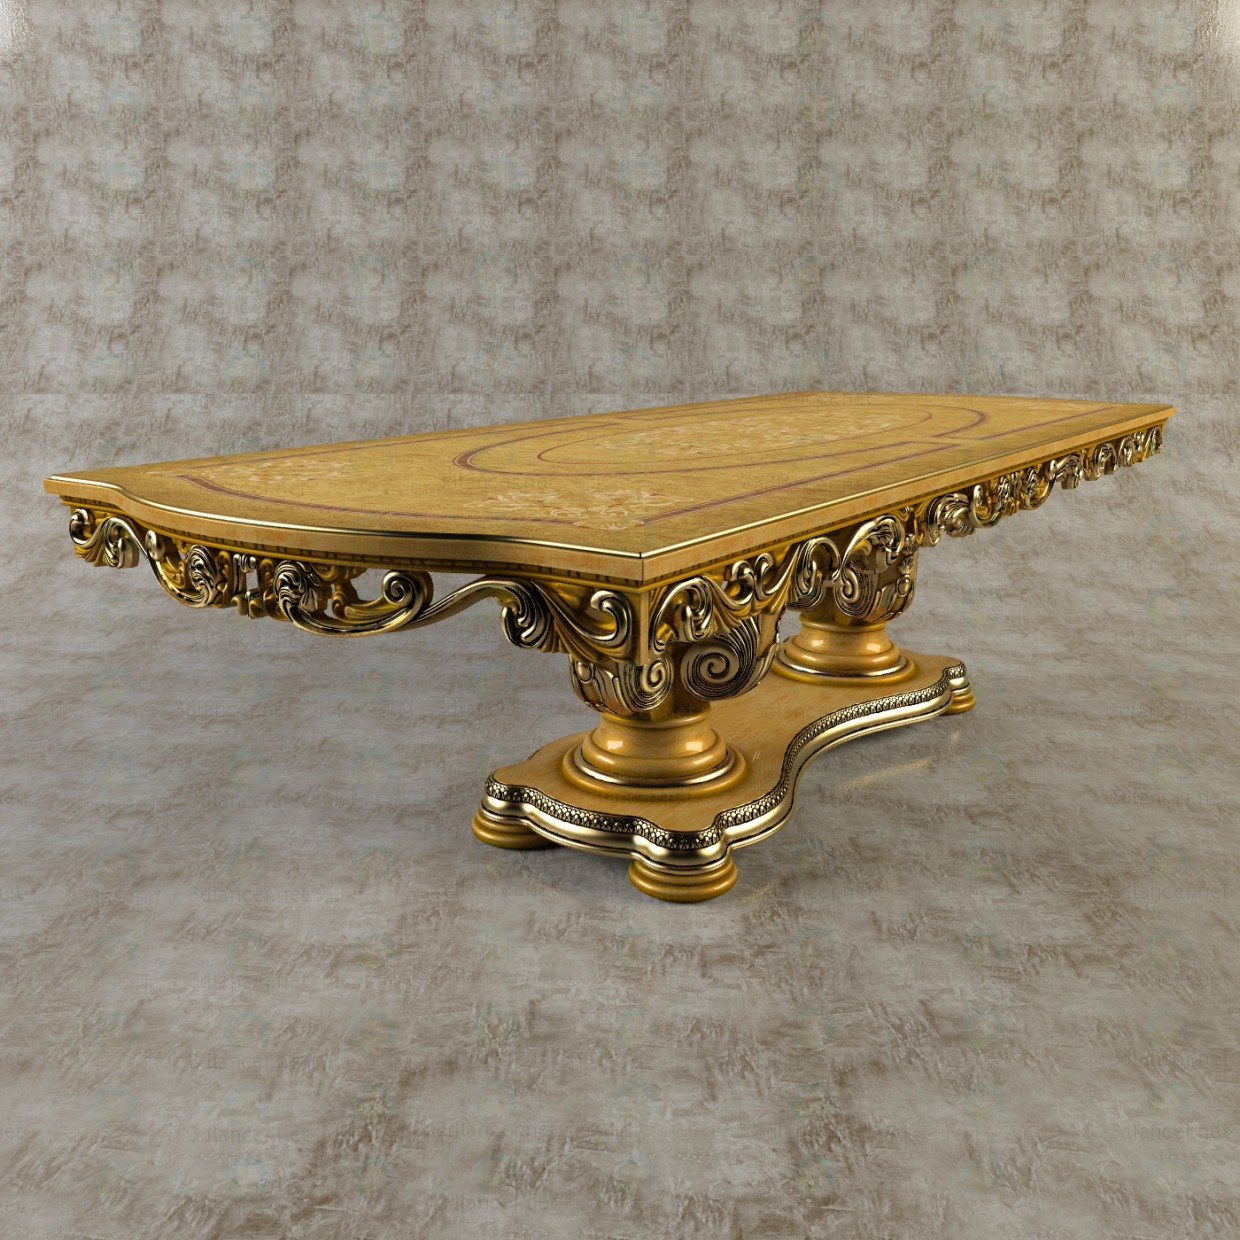 3d Dining table model buy - render